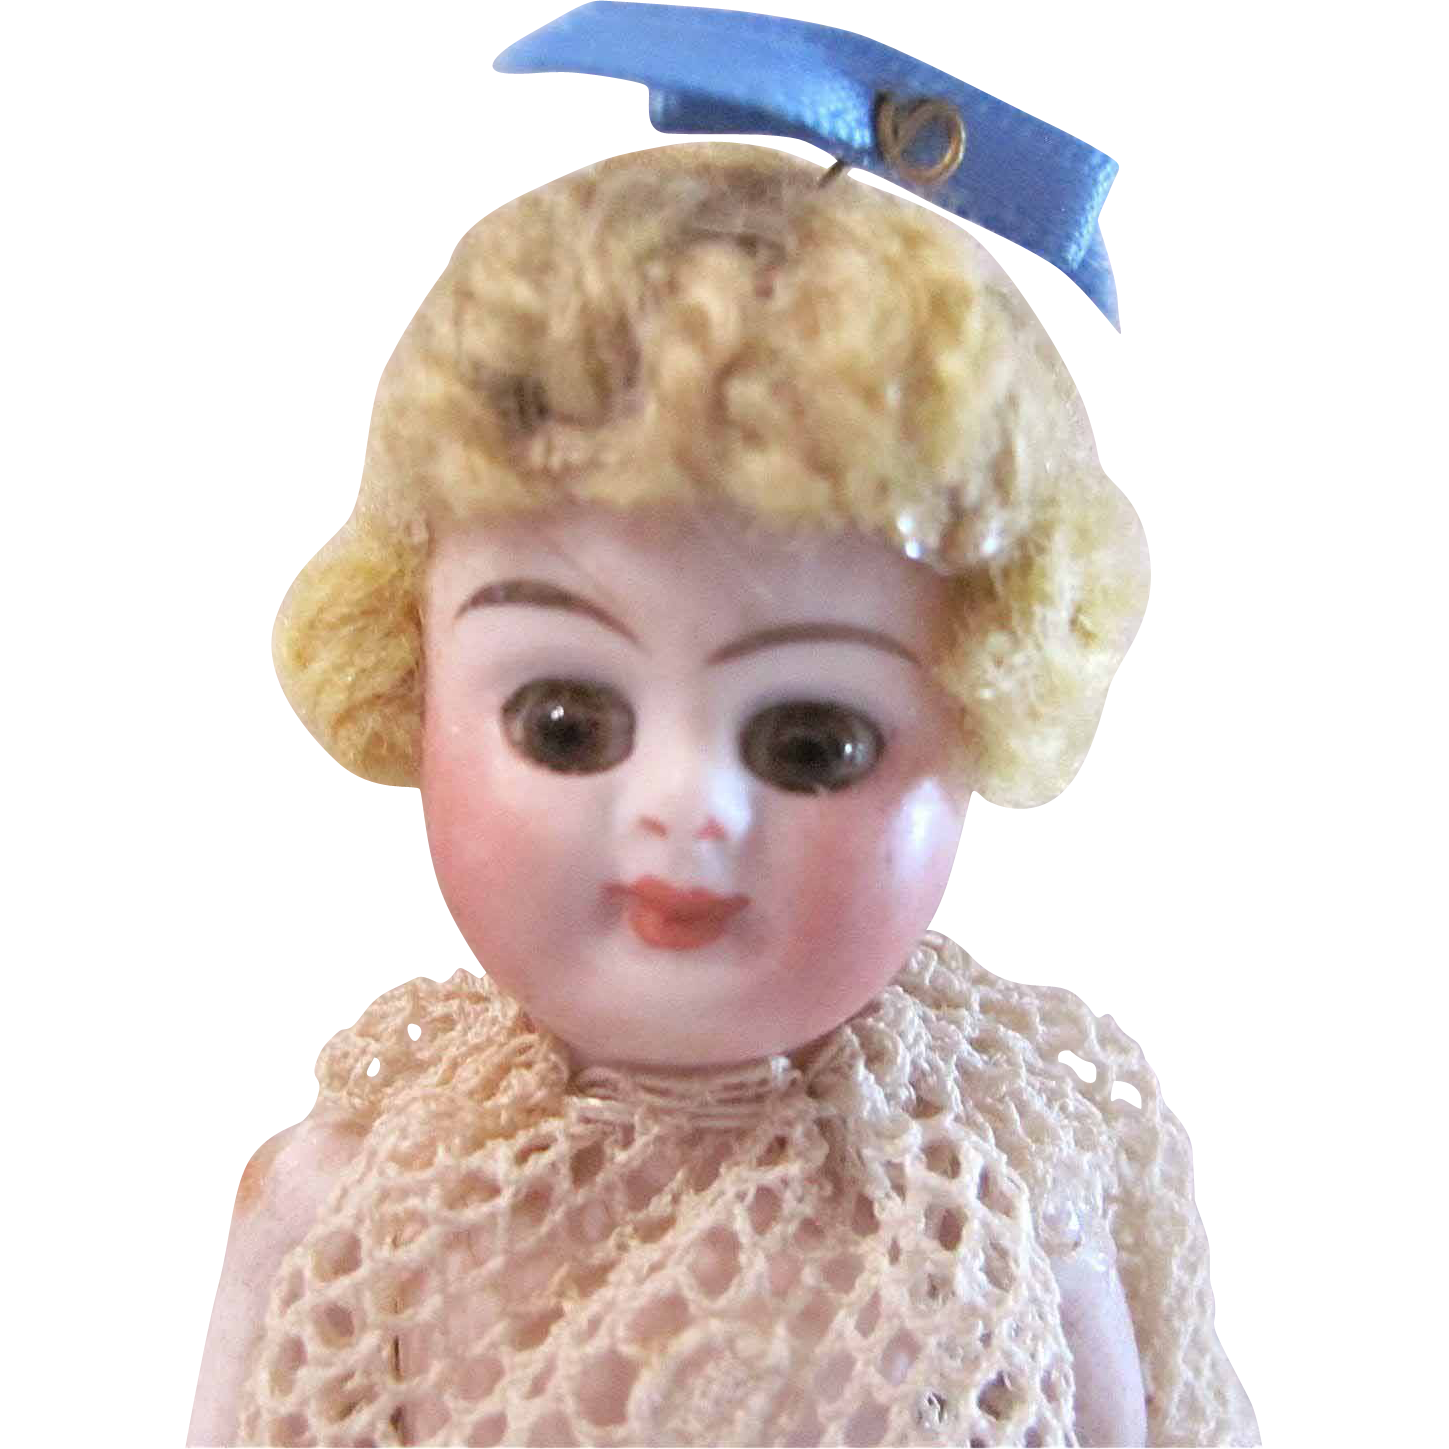 All-Bisque Dollhouse Doll With Brown Glass Eyes, Miniature Doll In Lace Dress, Circa 1900s